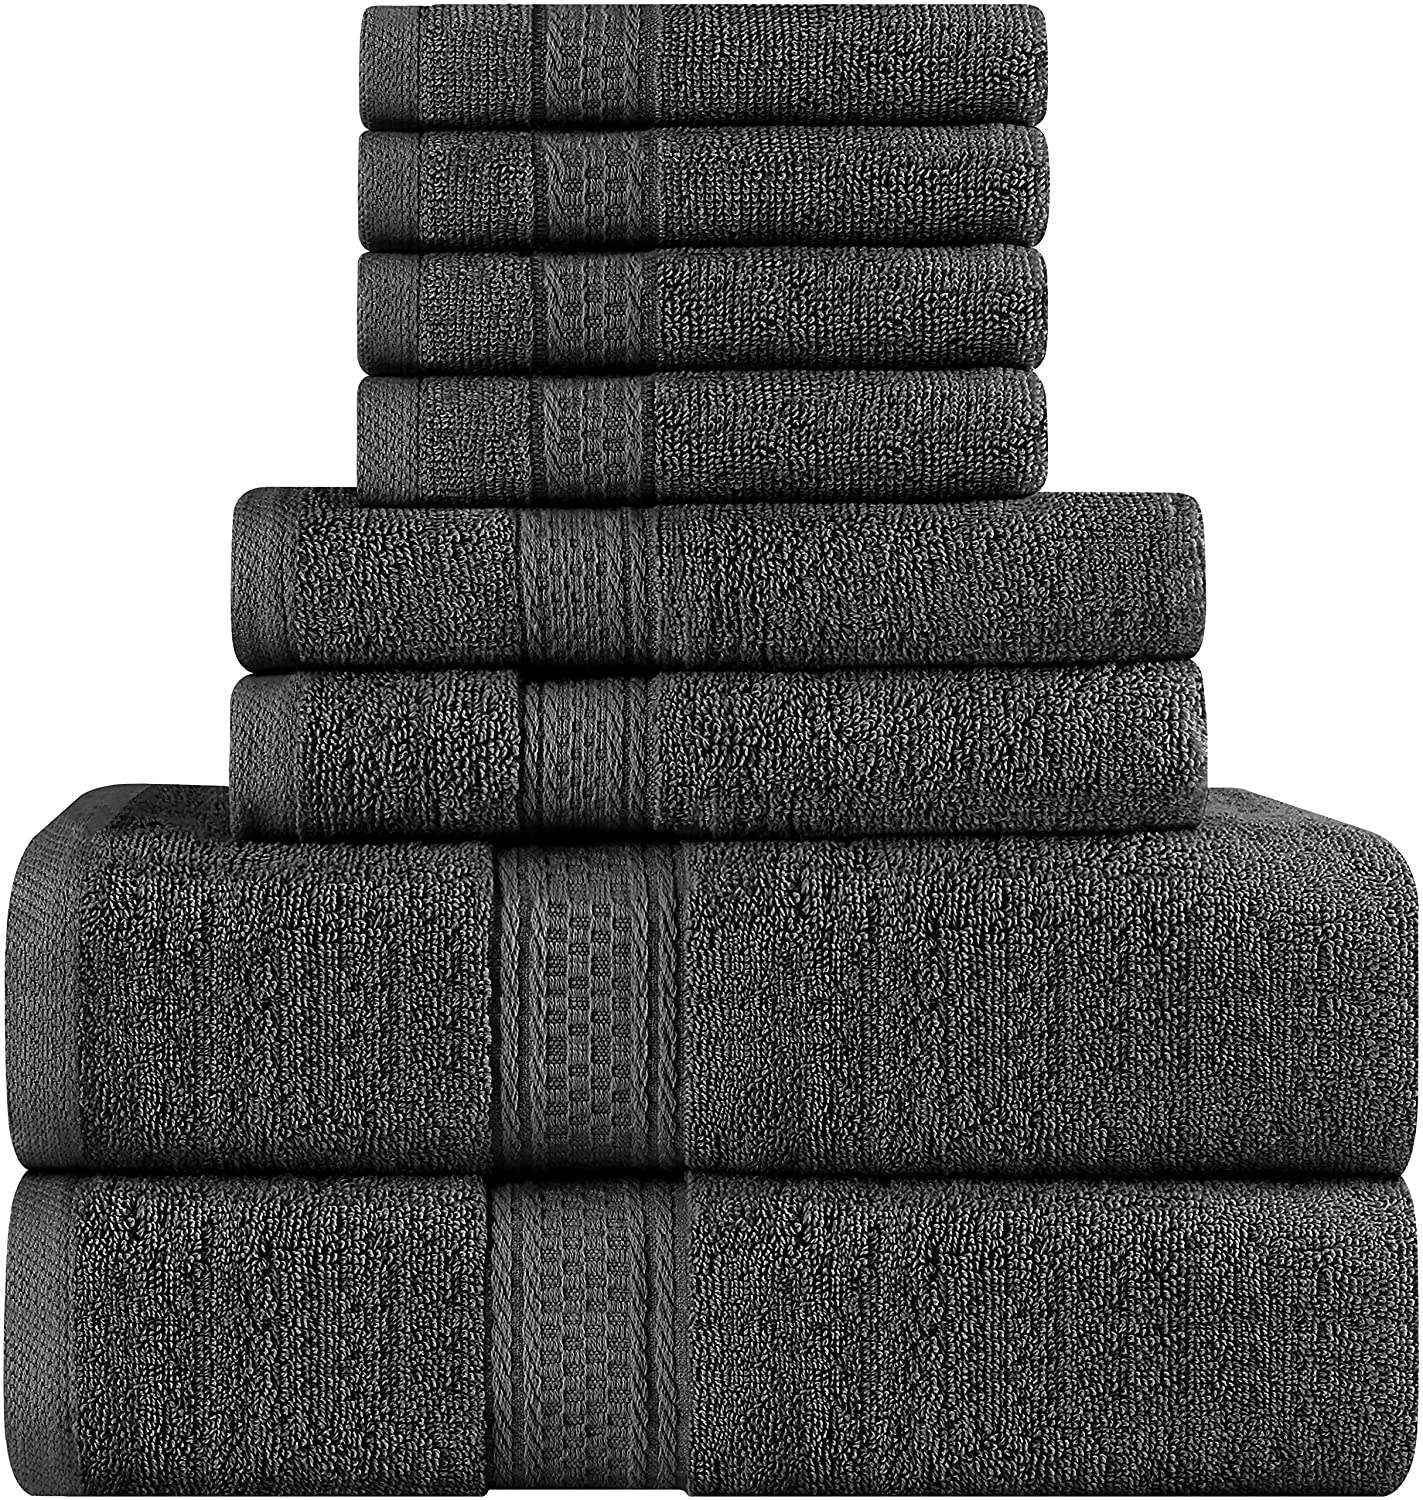 8 Piece Towel Set; 2 Bath Towels, 2 Hand Towels and 4 Washcloths